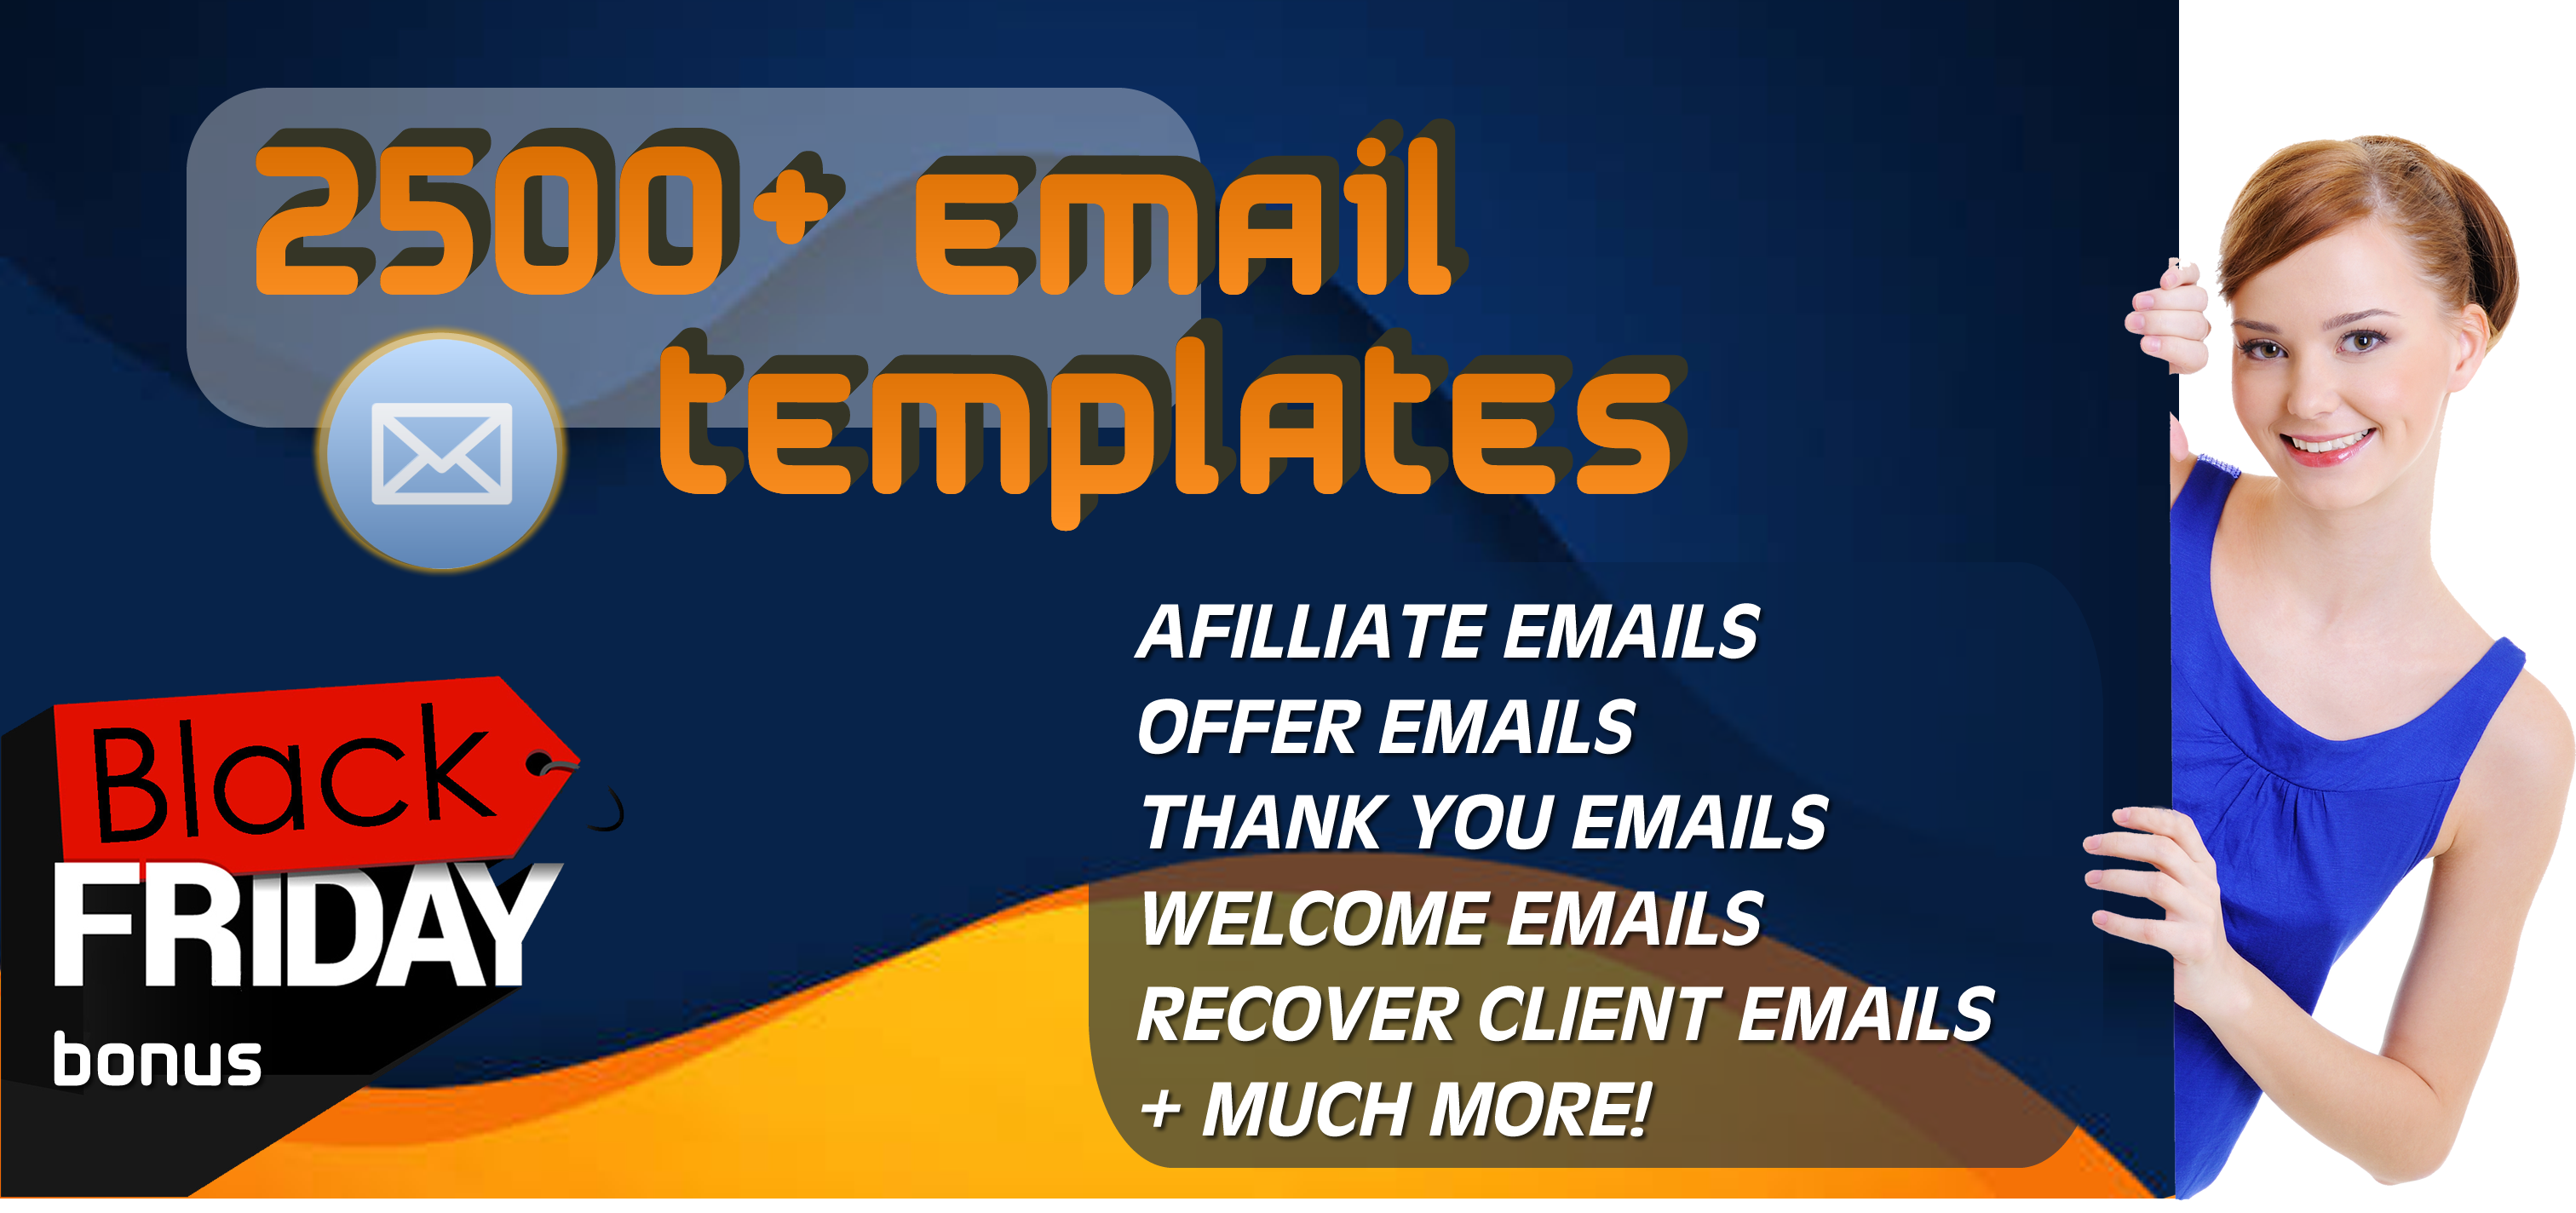 I will give you more than 2500 PLR ready copywriting emails to use